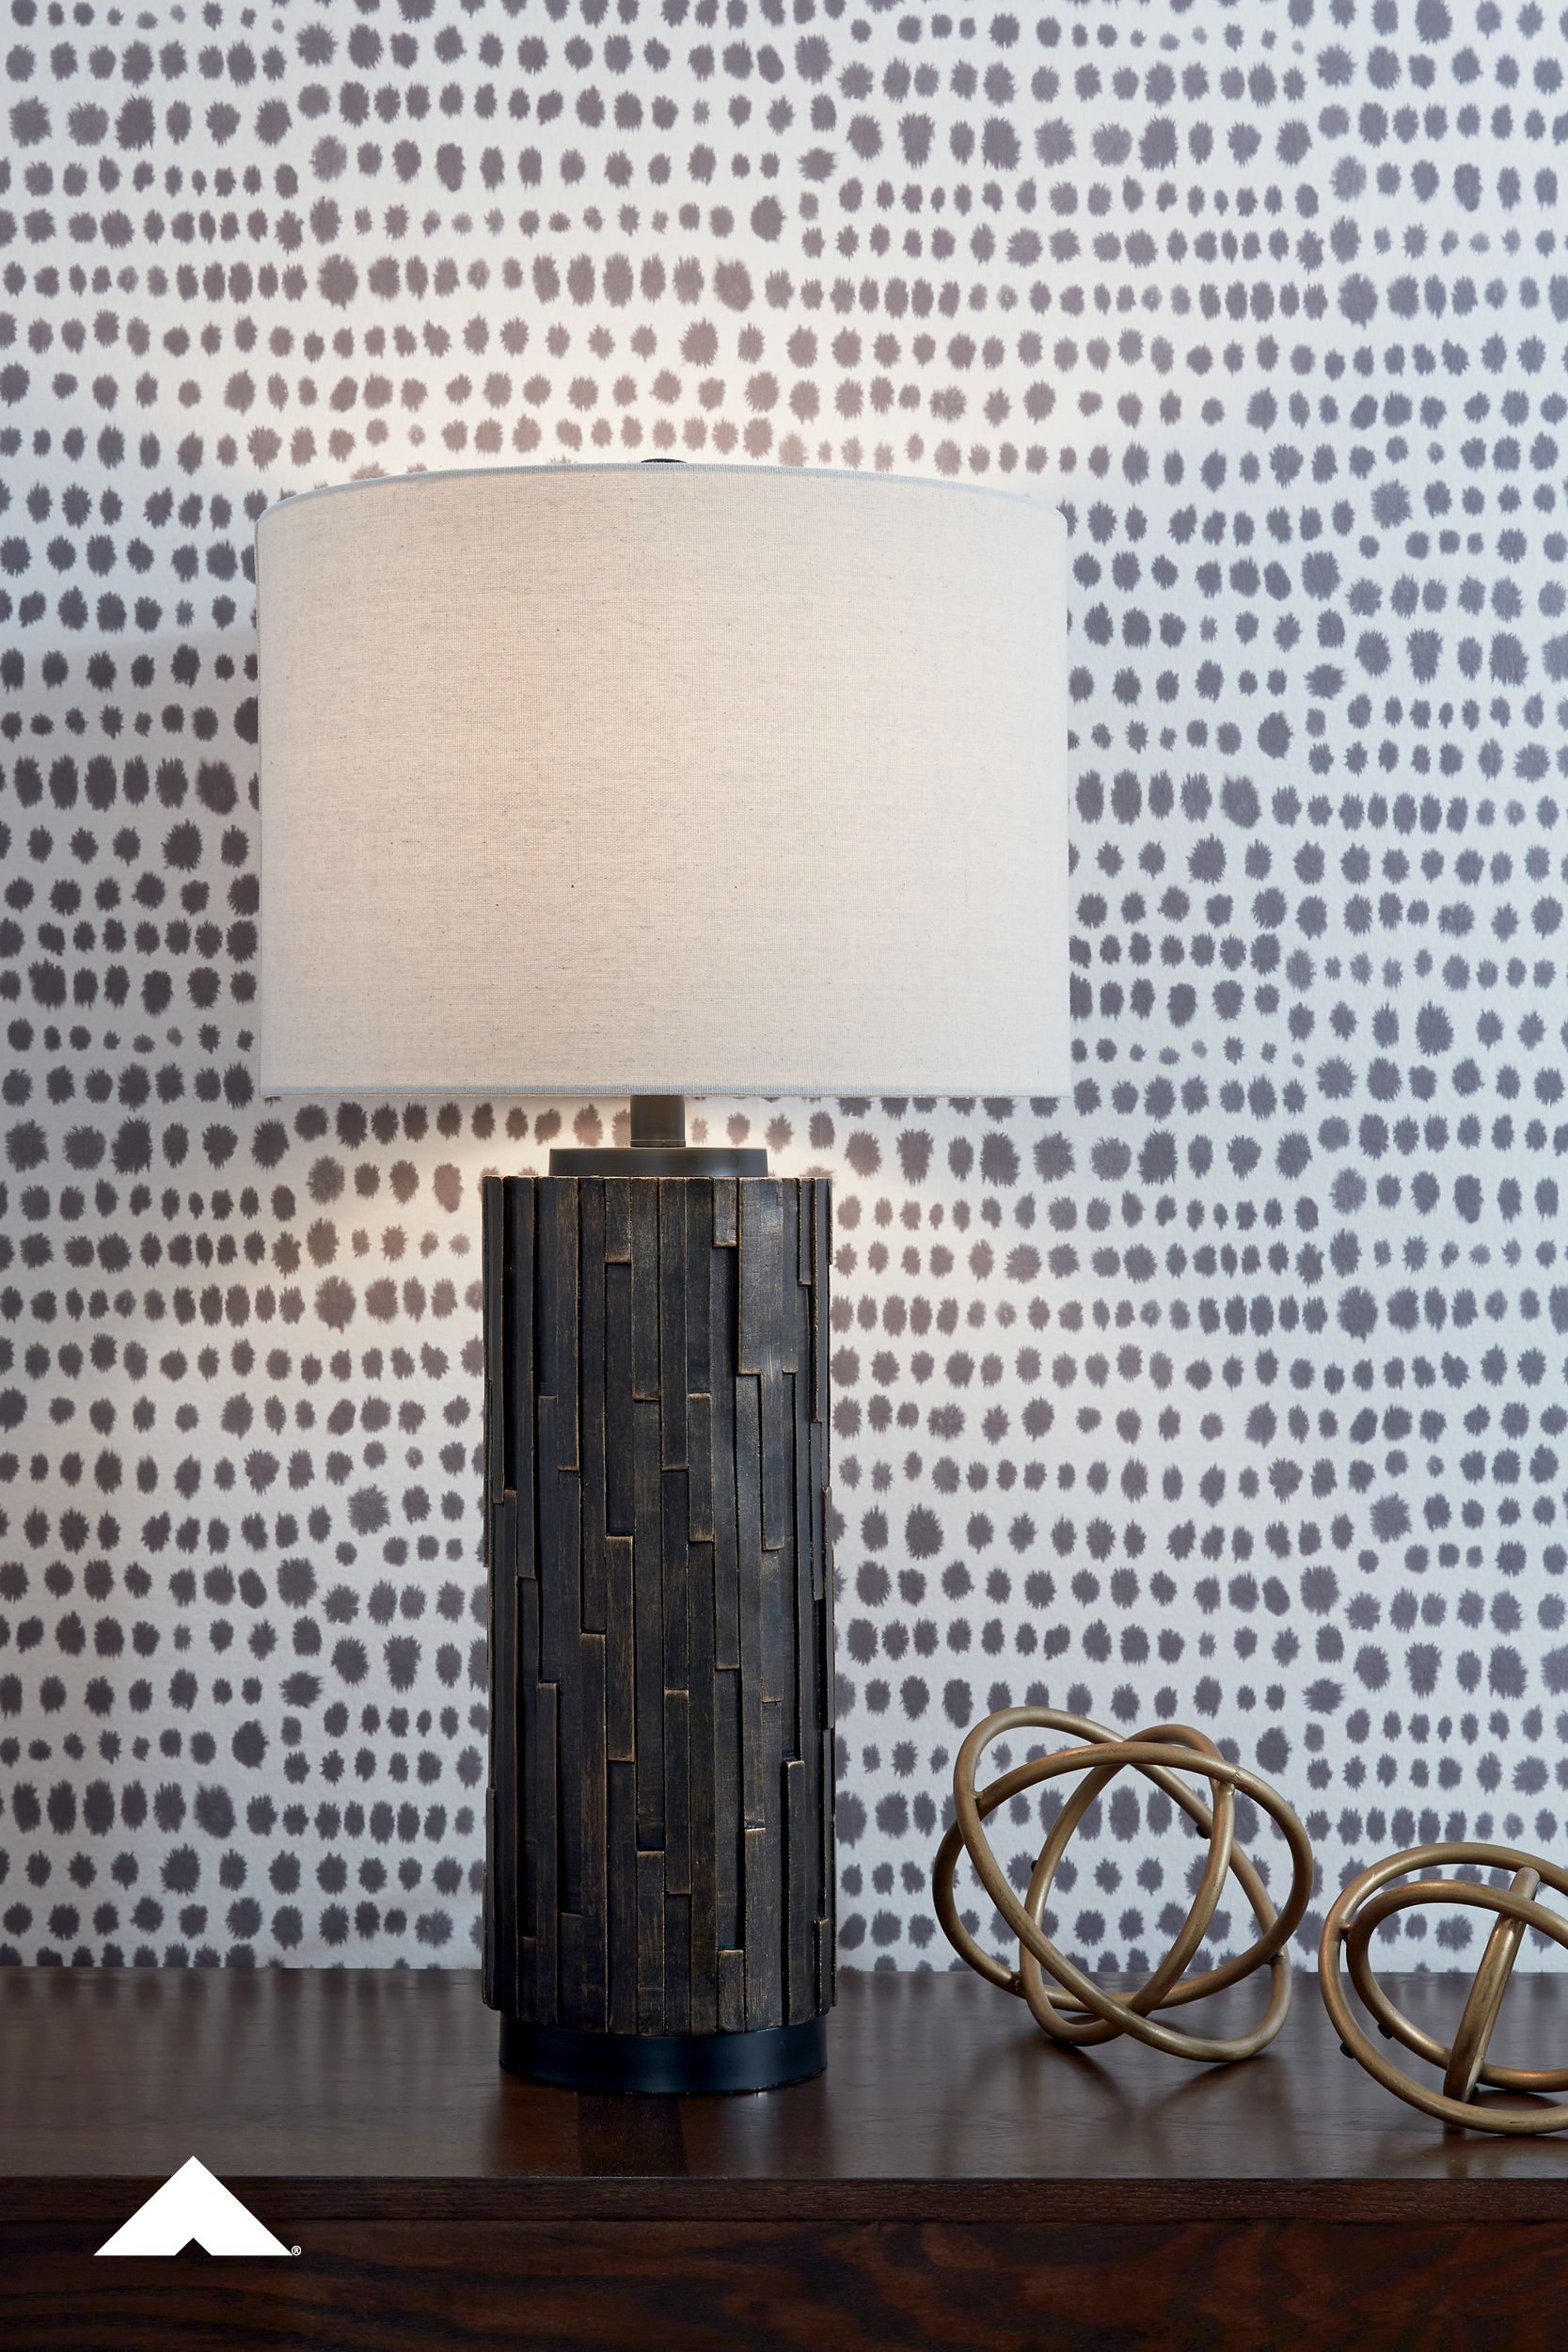 Makya Black Table Lamp By Ashley Furniture Industries A Natural Element Is Always A Welcome To In 2020 Ashley Furniture Industries Ashley Furniture Black Table Lamps